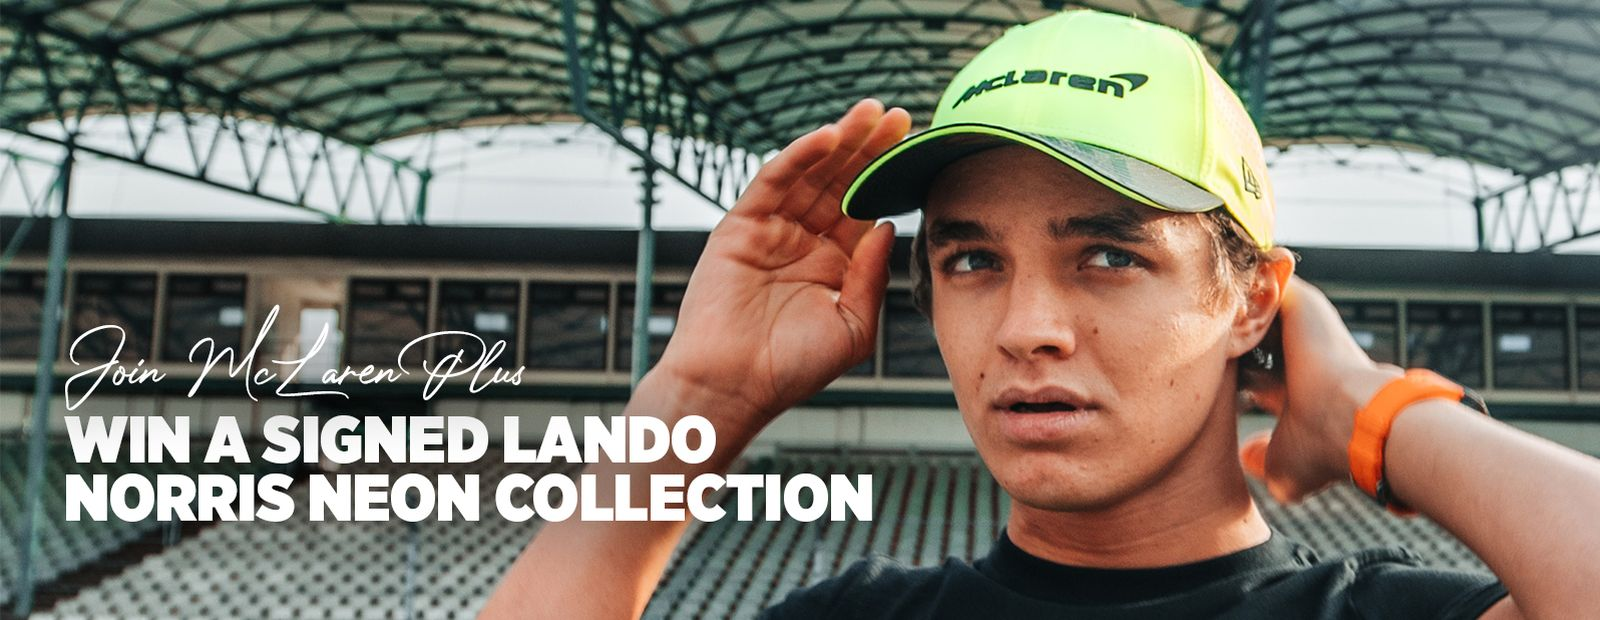 Win a signed Lando Norris Neon Collection